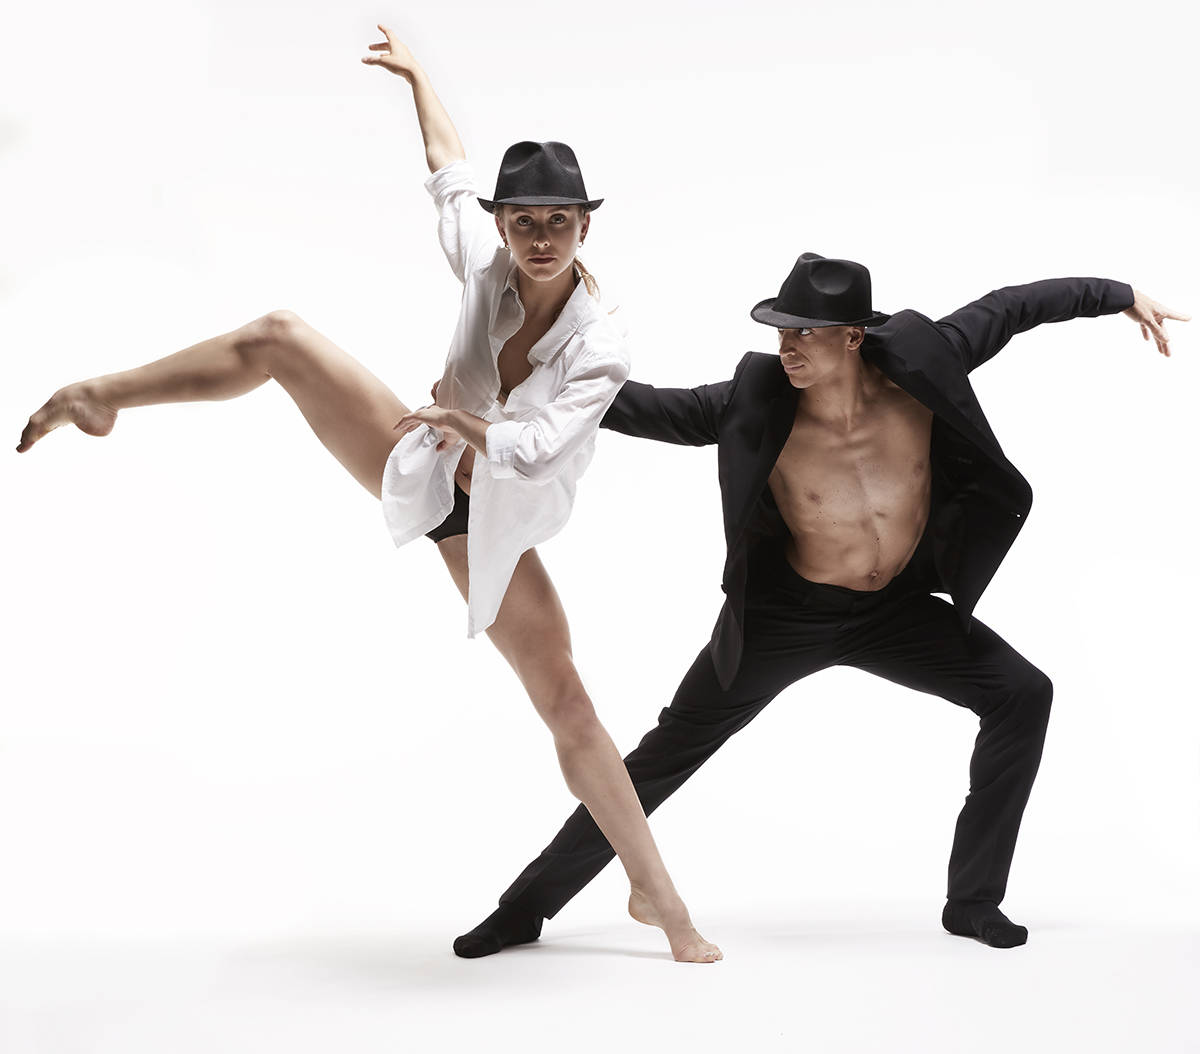 """Ballets de Jazz de Montreal blends the music of Leonard Cohen with beautiful choregraphy in """"Dance Me,"""" Nov. 16 and 17 at the Royal Theatre. Marc Montplaisir/Ballets de Jazz de Montreal"""